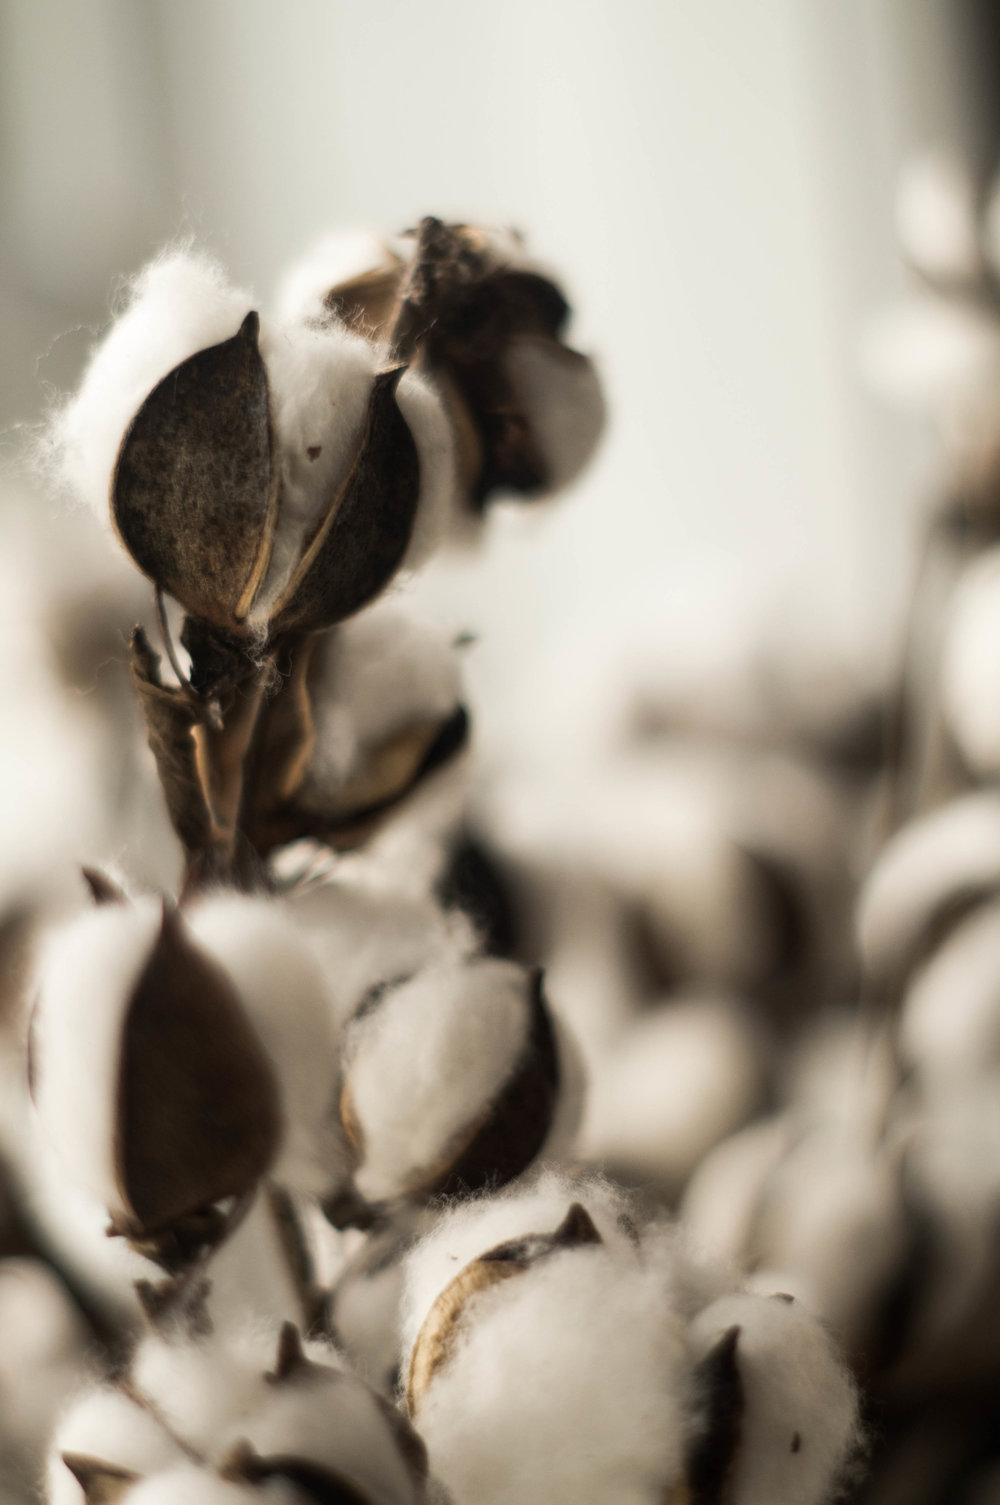 dried cotton pods image by samantha spigos